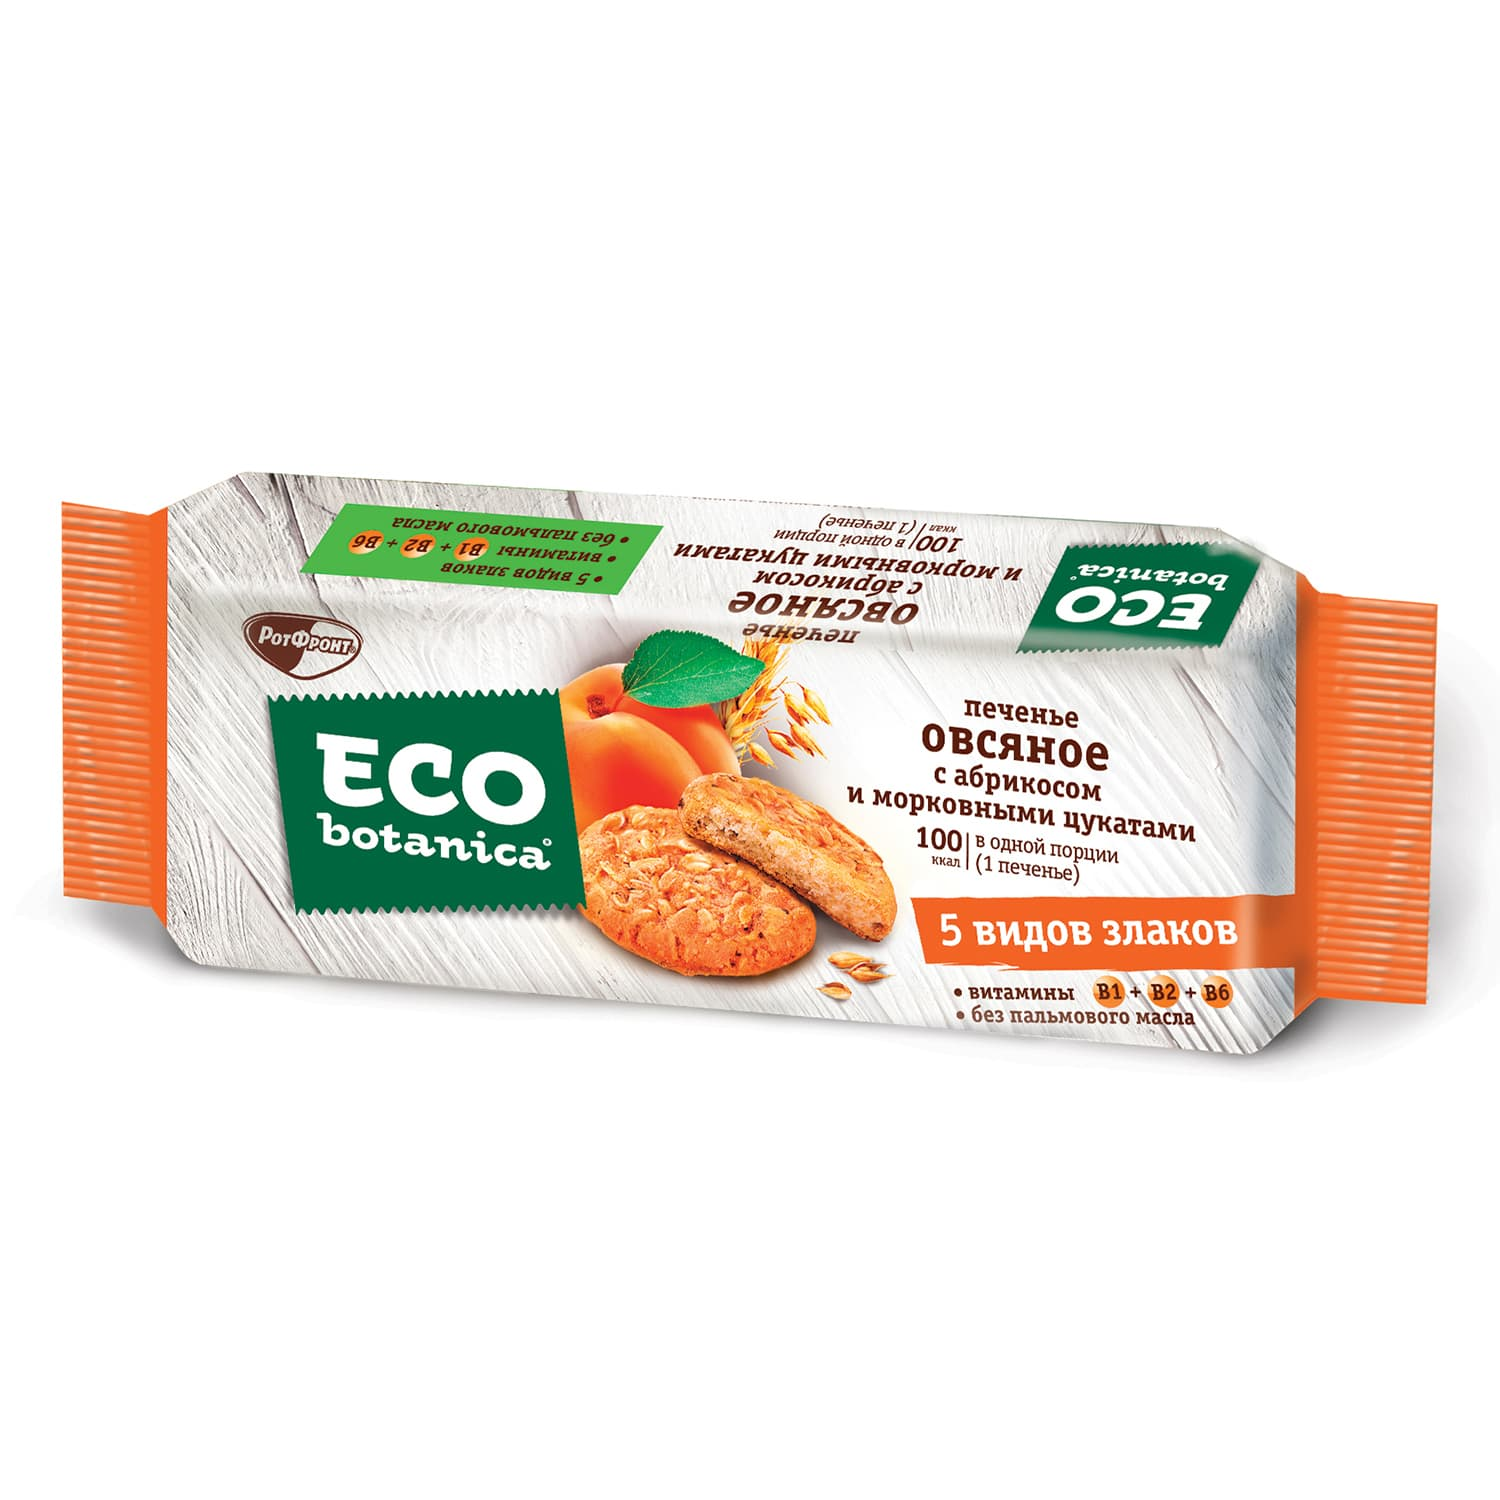 Cookies Apricot and Carrot, ECO BOTANICA, 0.62 lb/ 280g